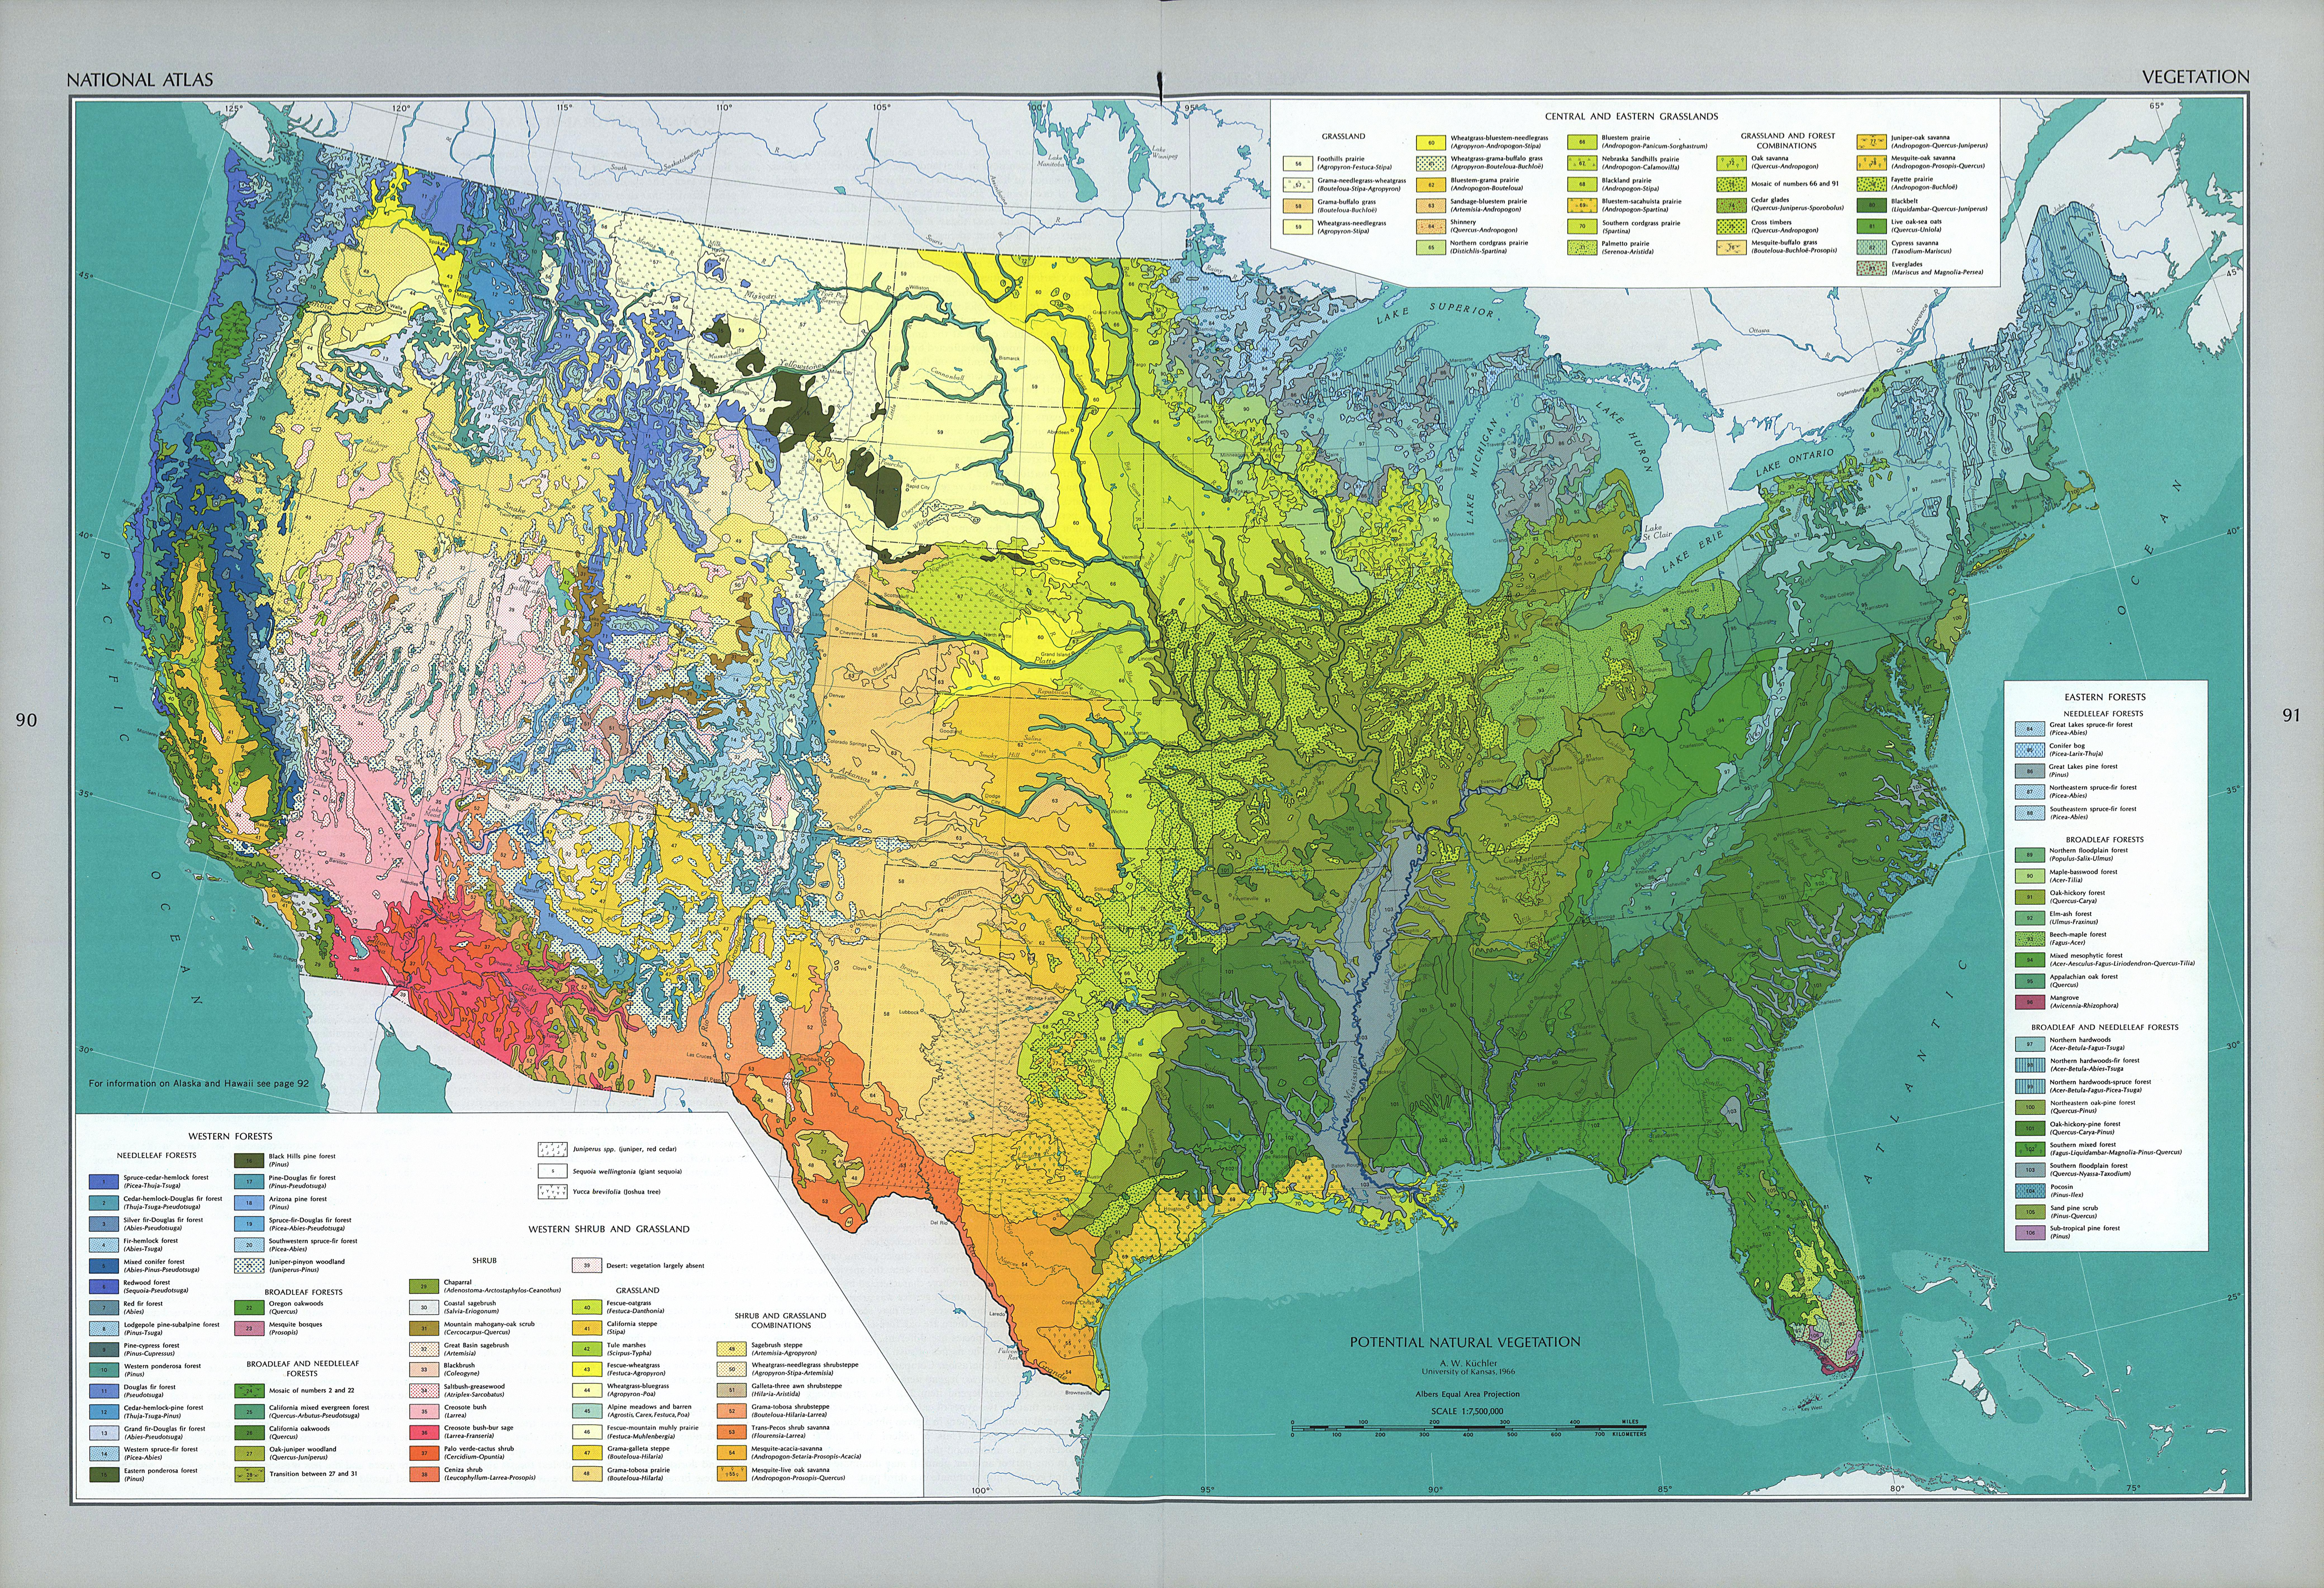 United States Vegetation Map